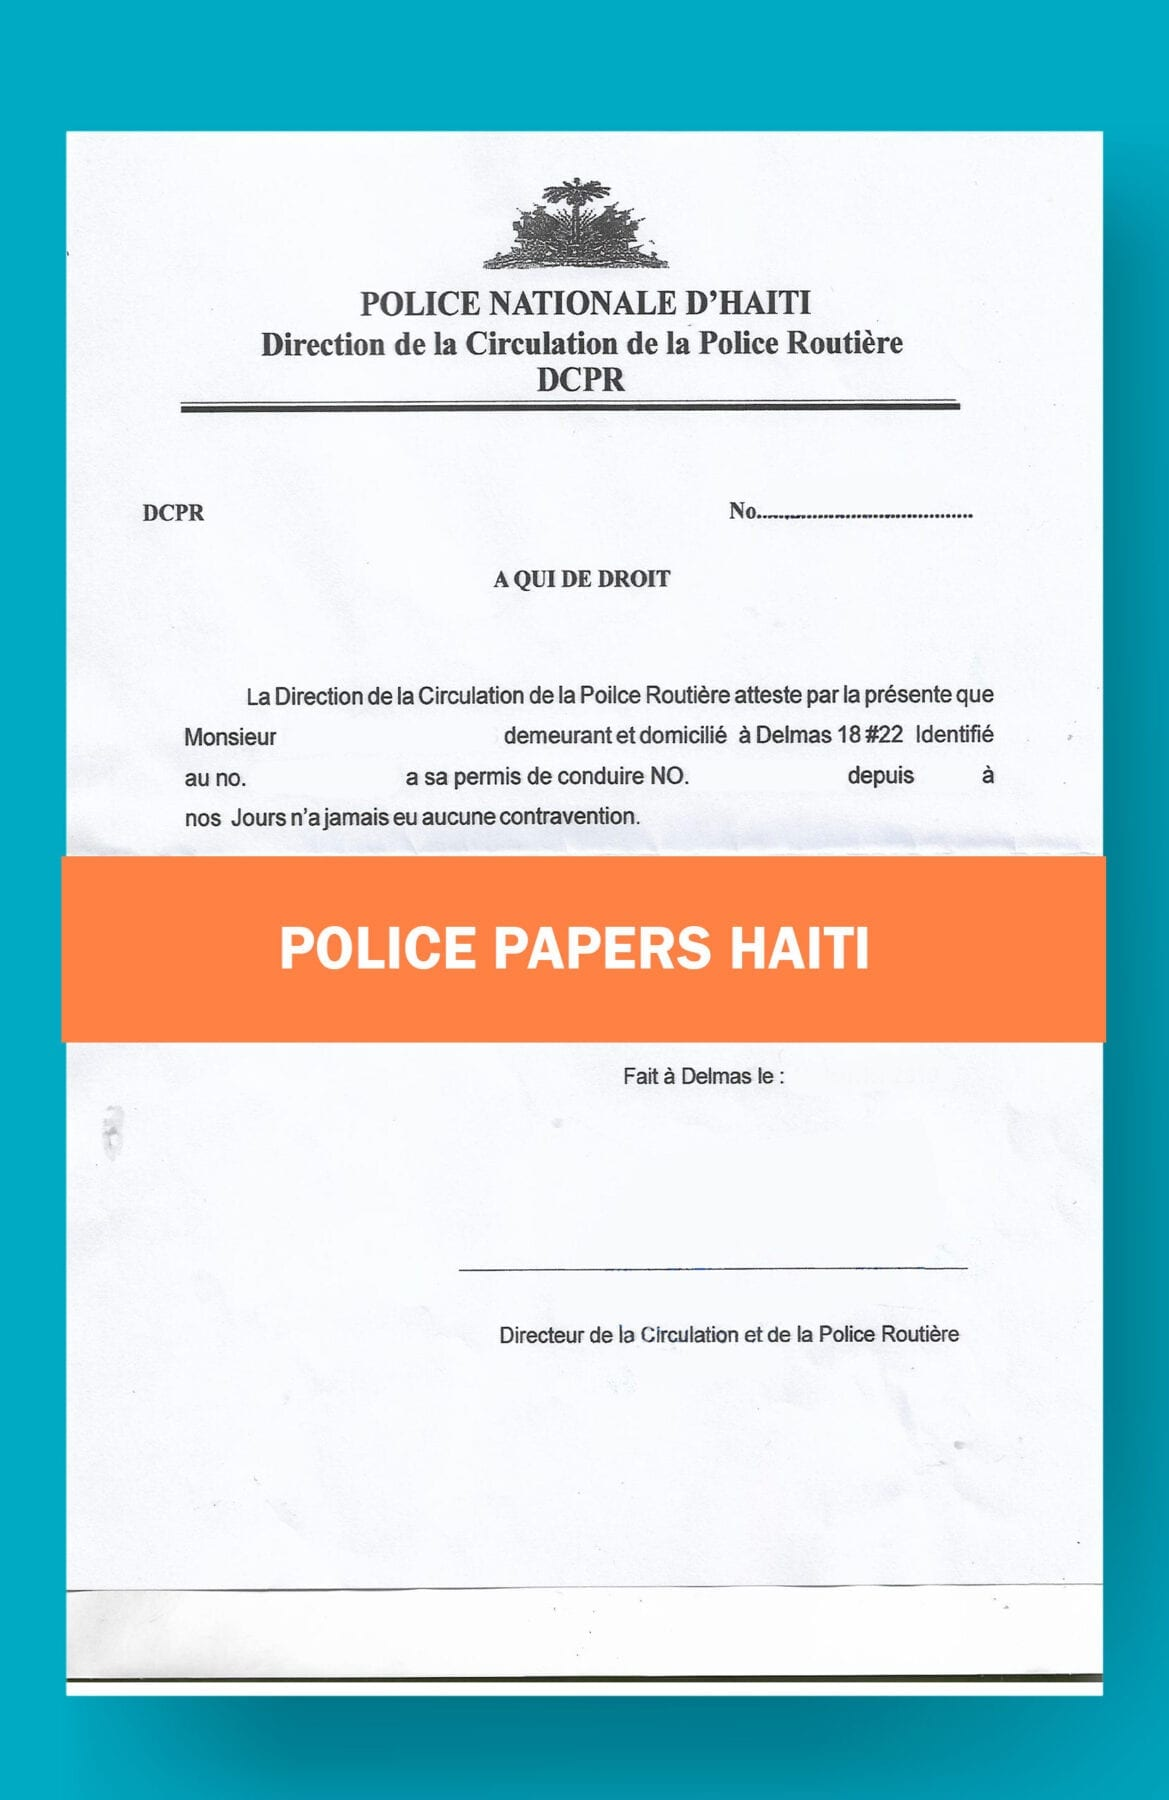 CRIMINAL_RECORD_HAITI